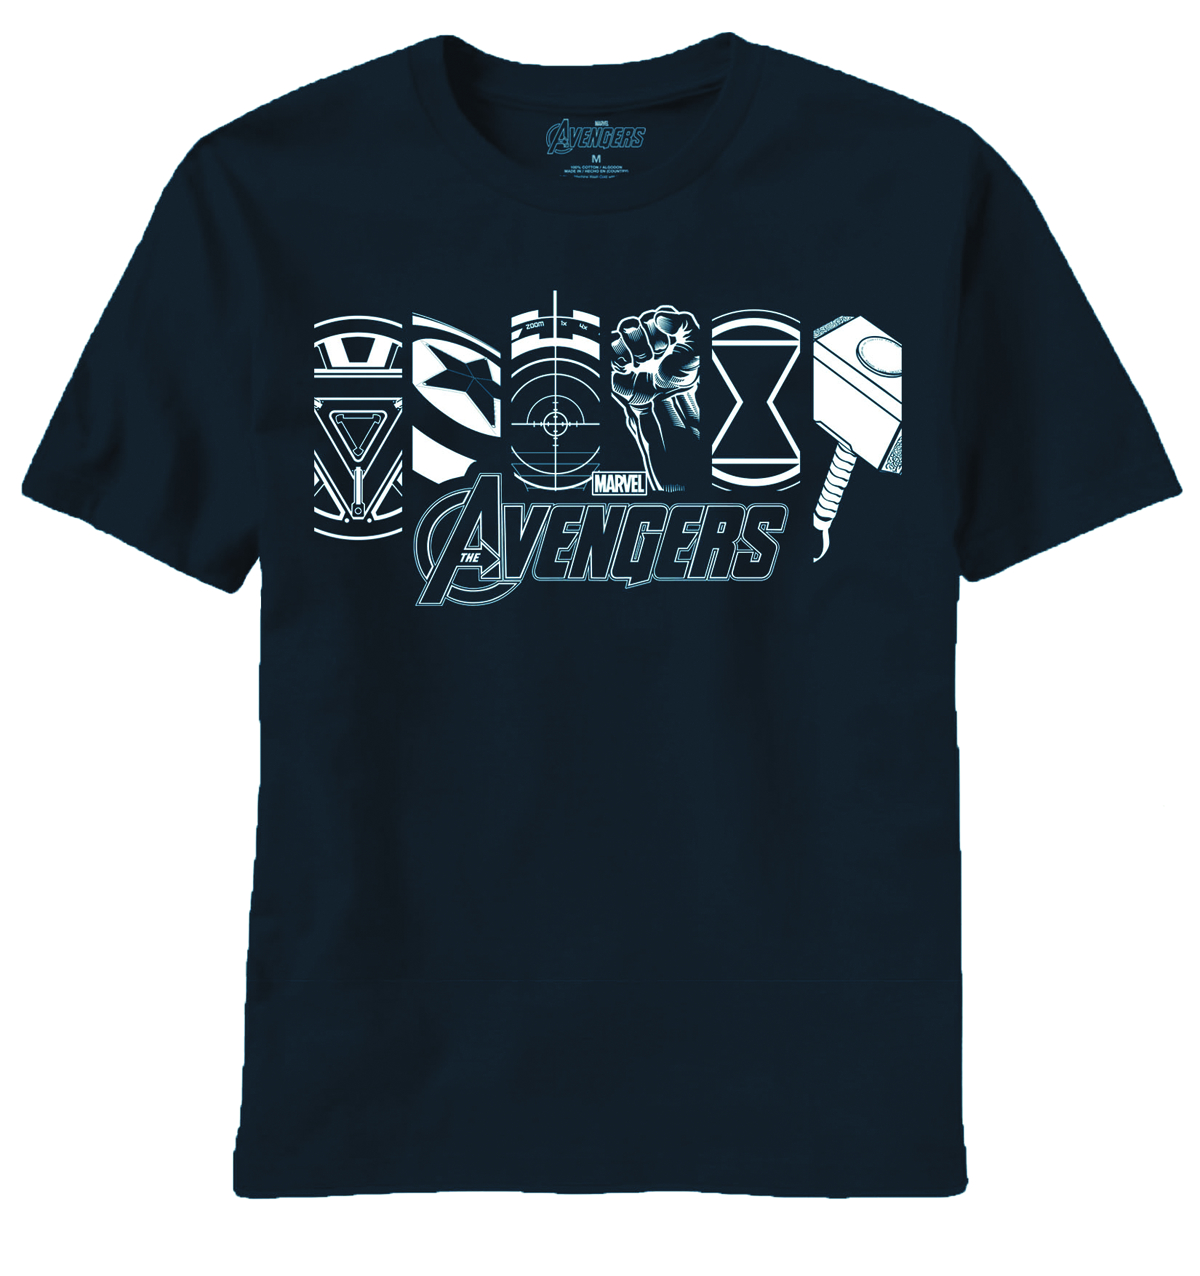 AVENGERS MOVIE LIT UP ICONS NAVY T/S LG